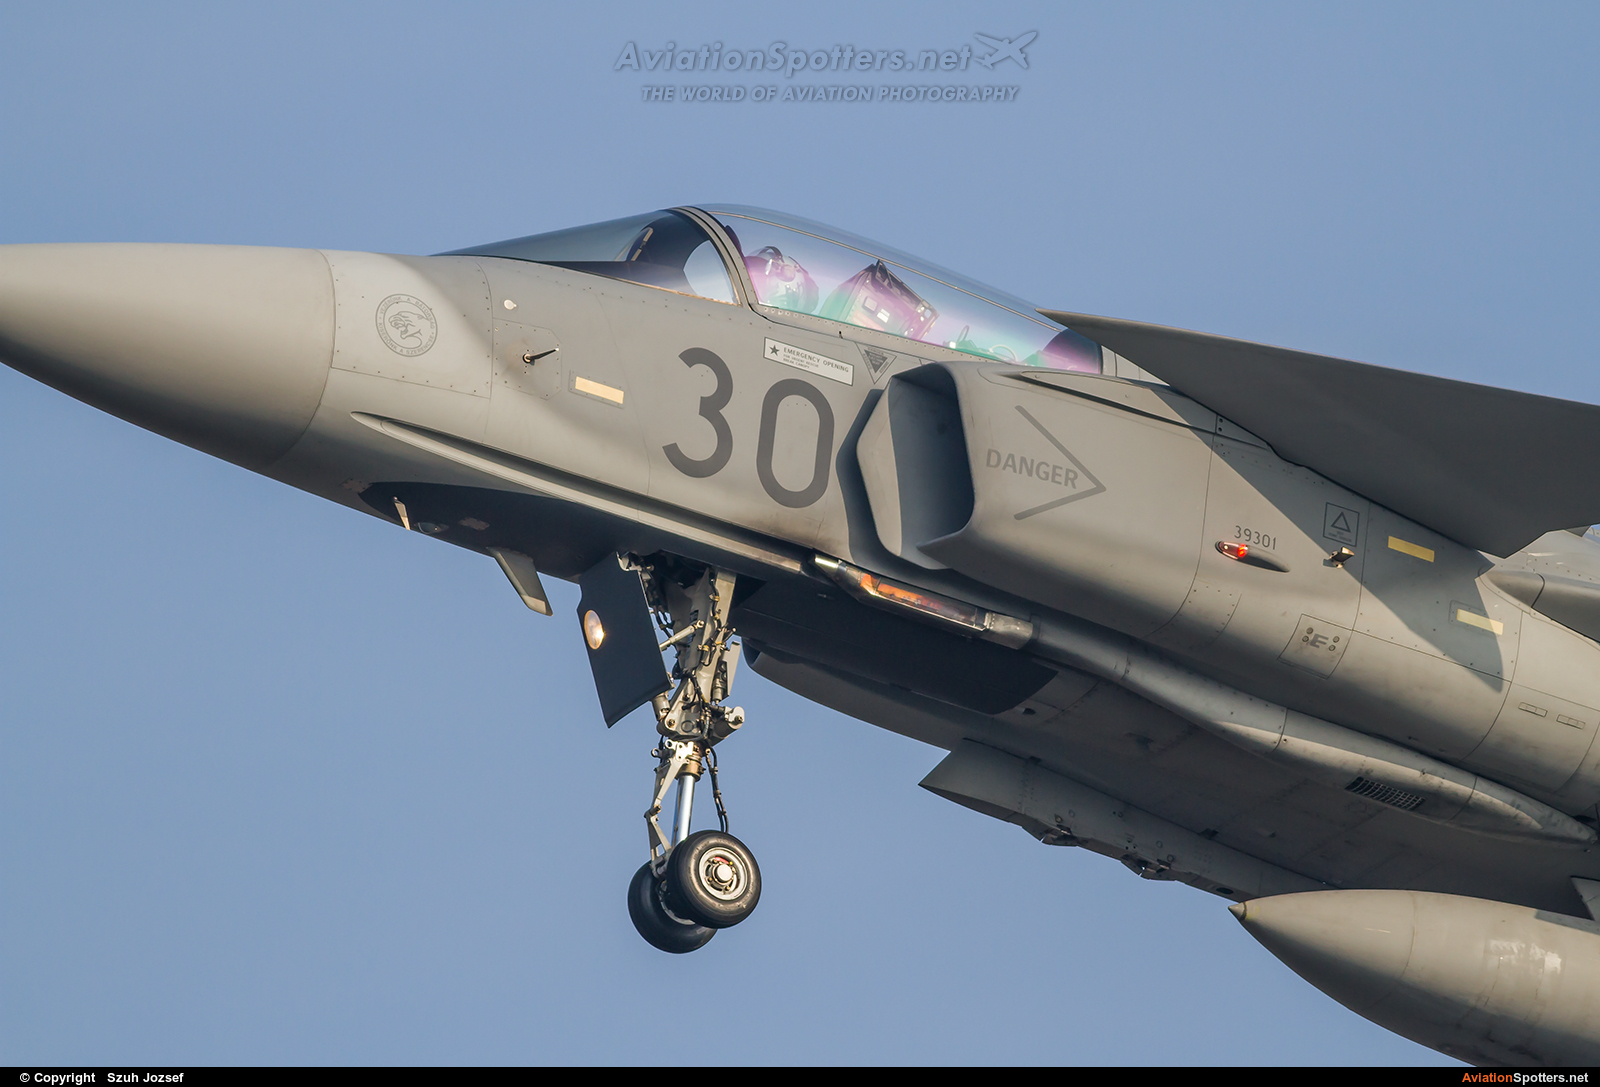 Hungary - Air Force  -  JAS 39C Gripen  (30) By Szuh Jozsef (szuh jozsef)